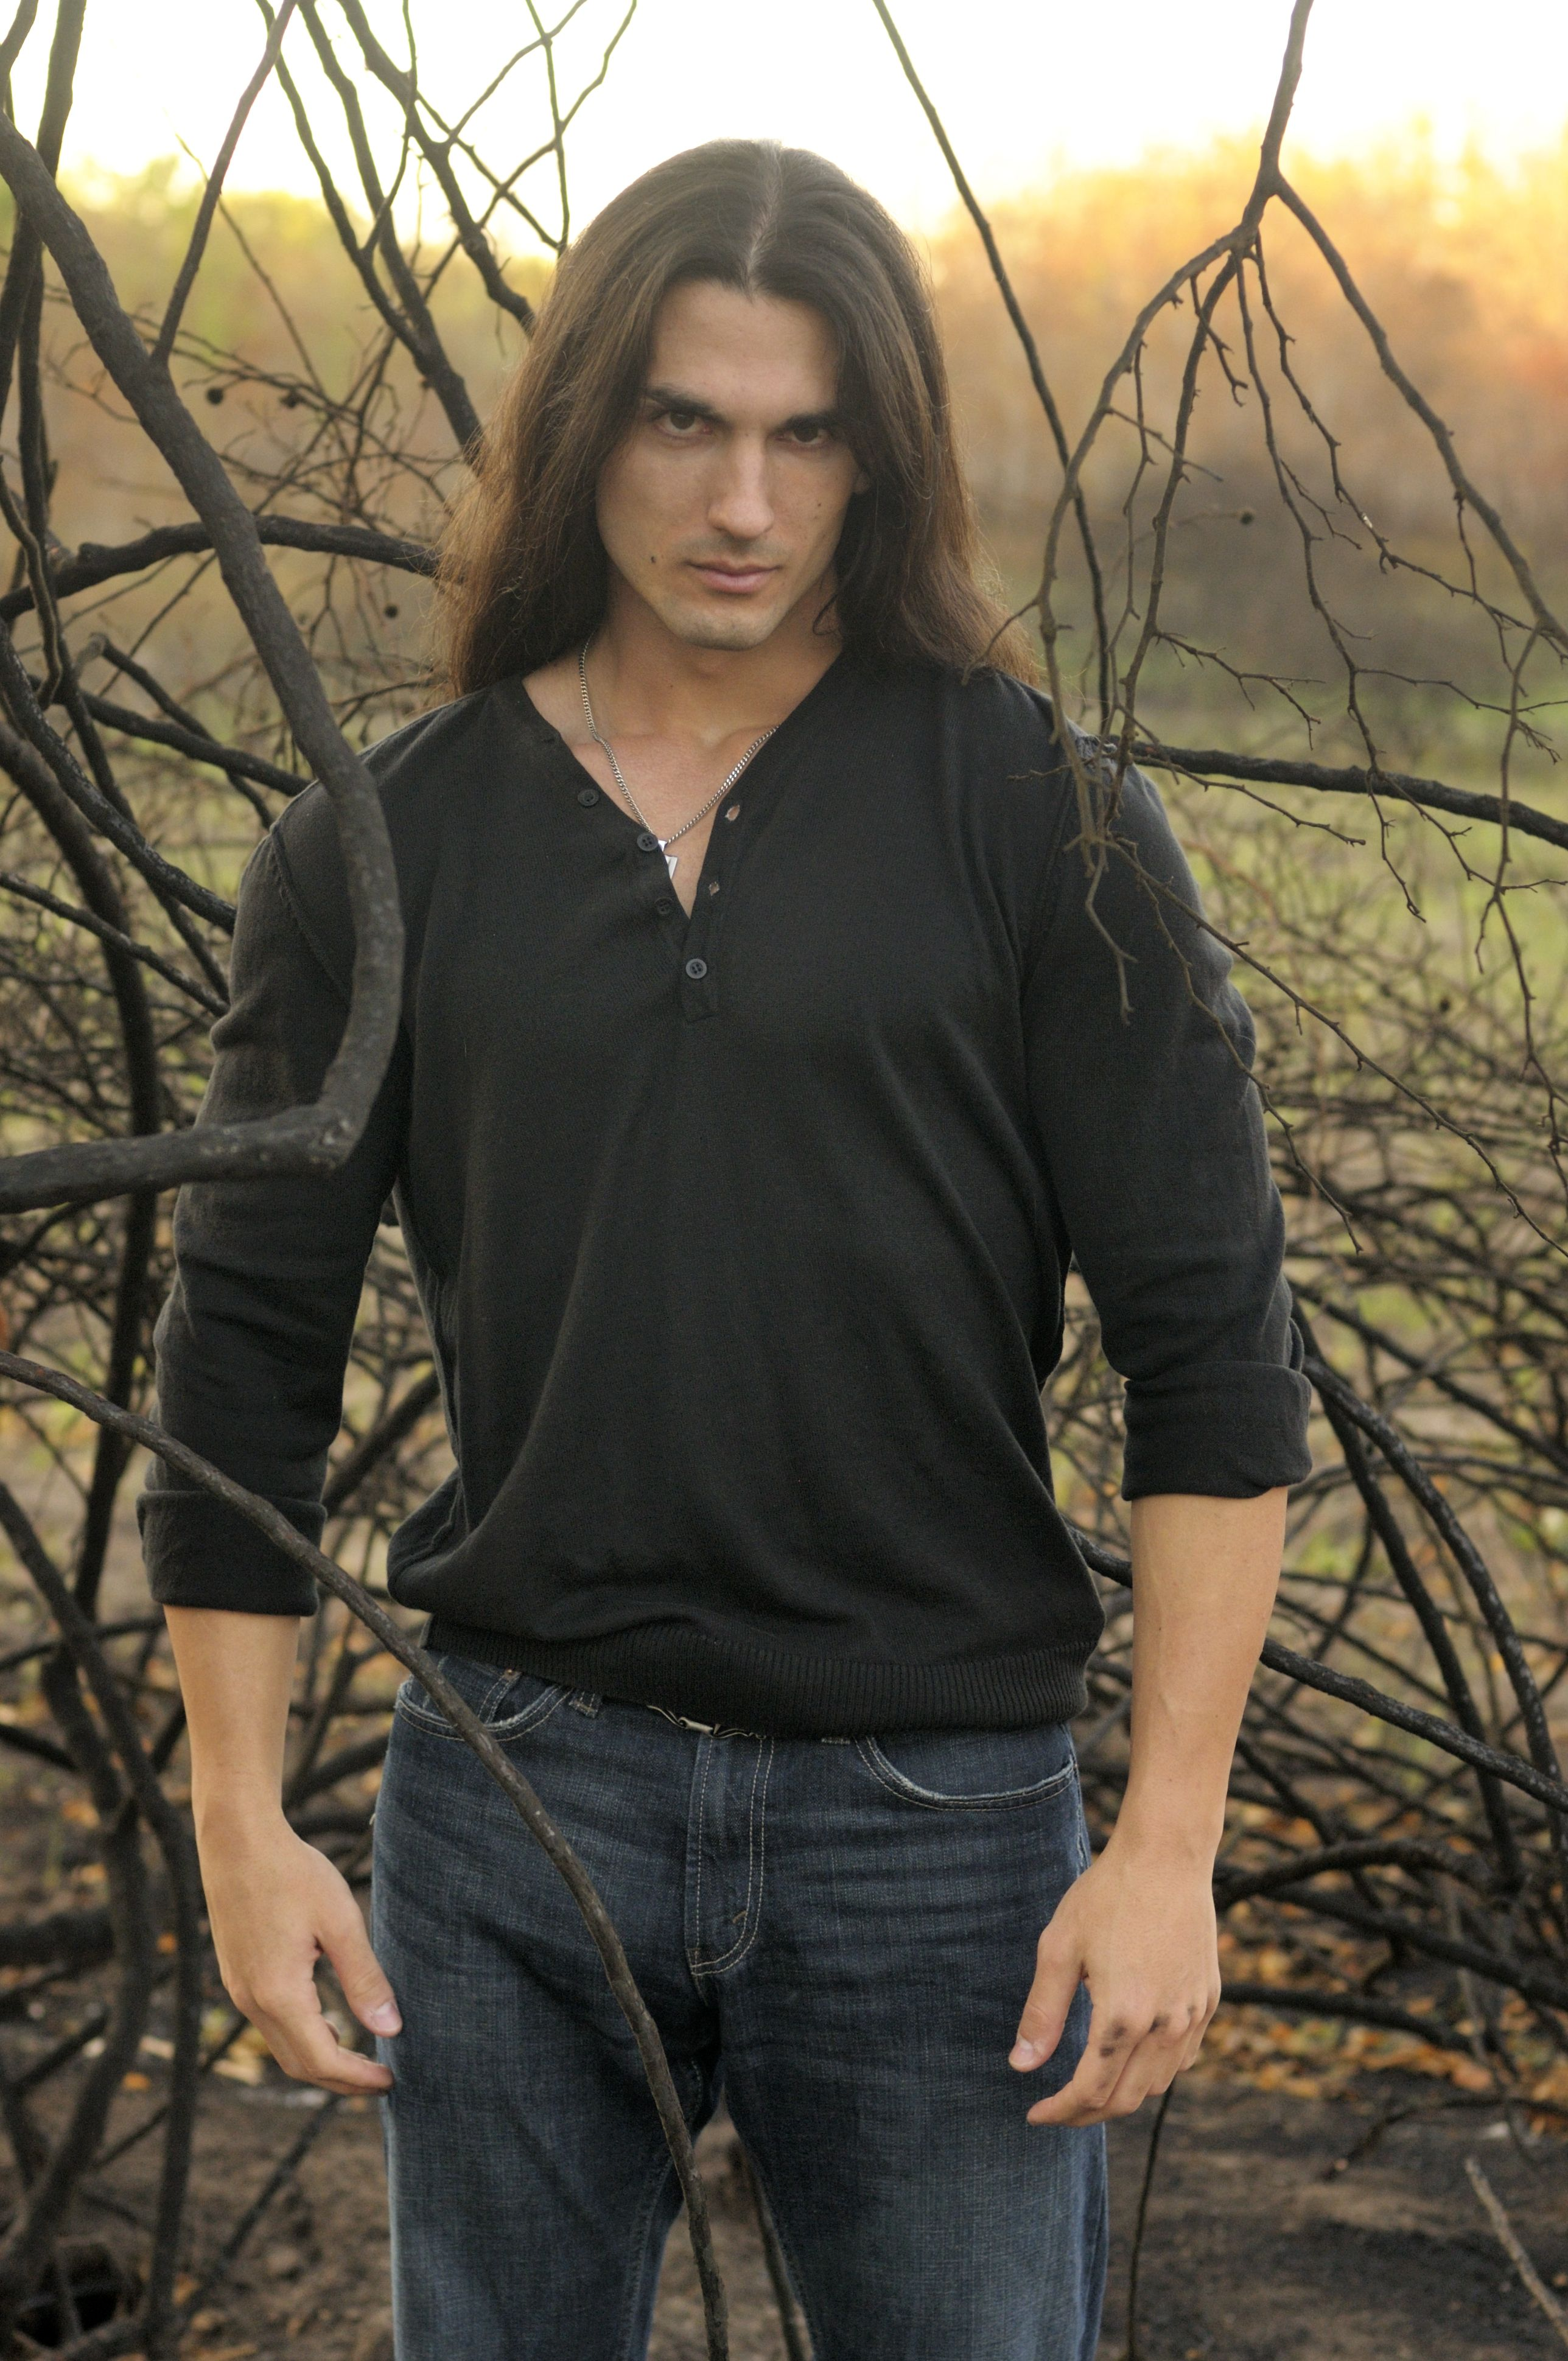 Pin On Long Hair Model Muscles